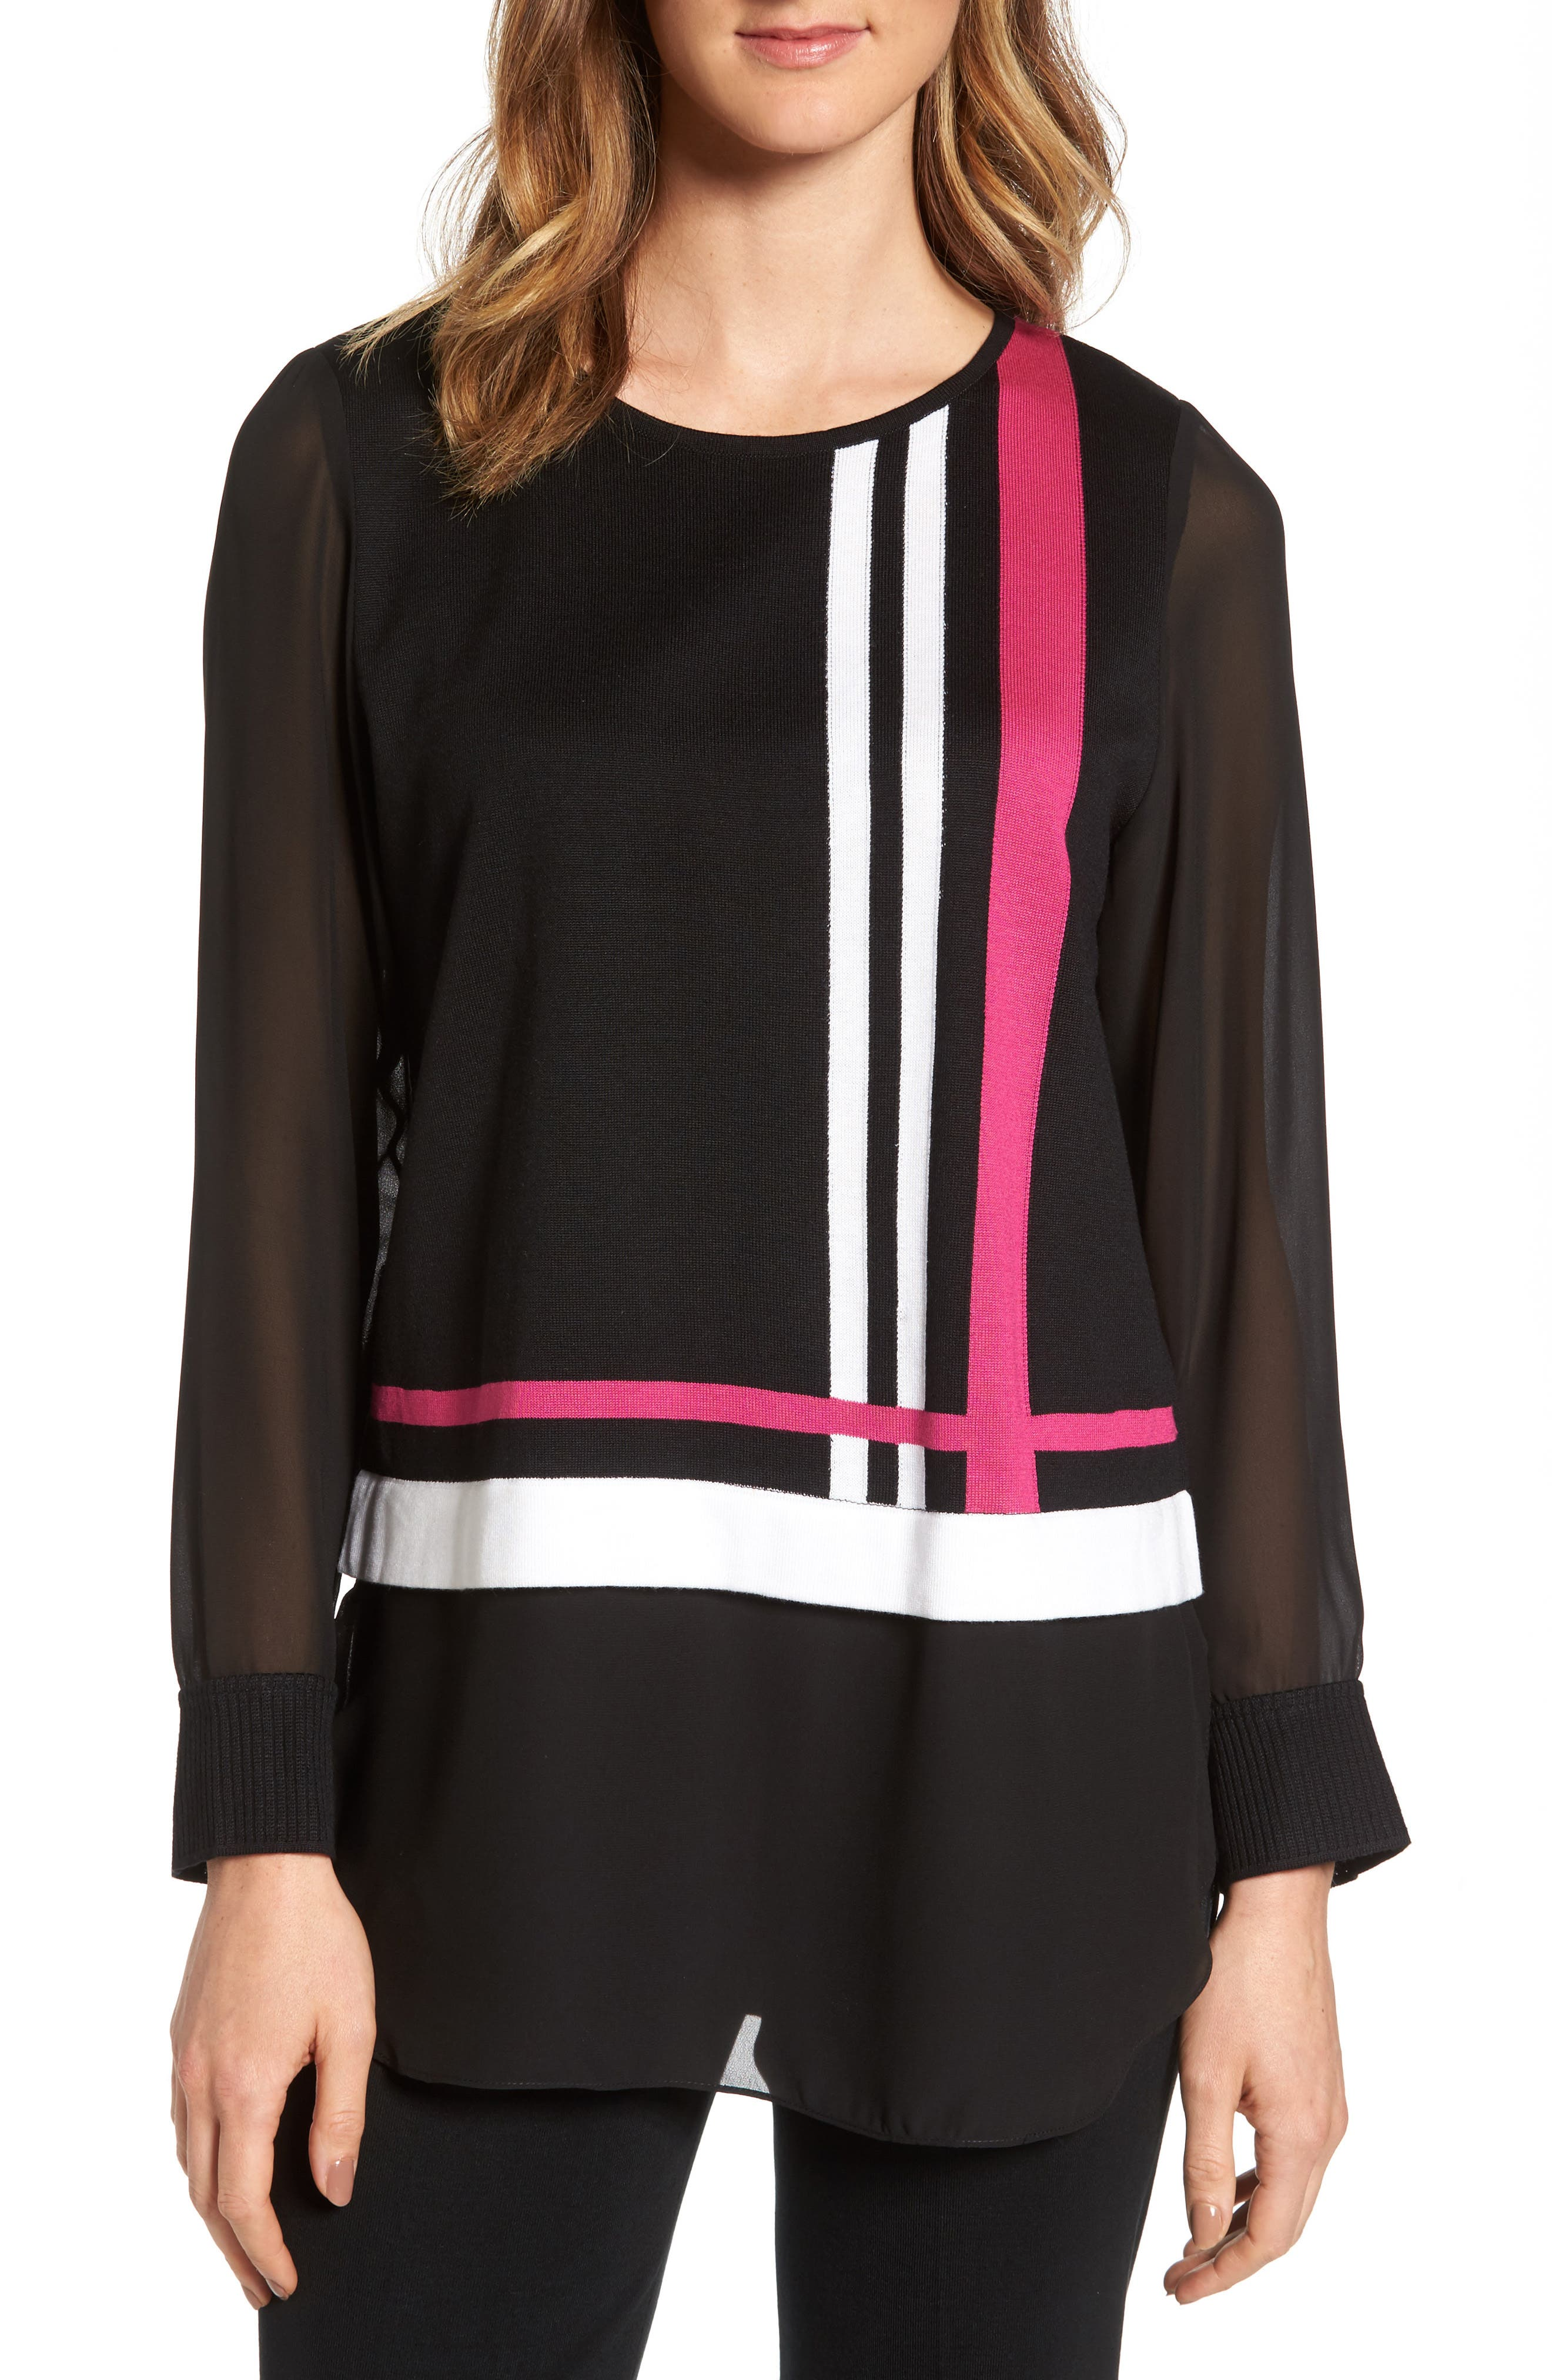 Layered Look Tunic,                         Main,                         color, Black/ Orchid/ Ivory